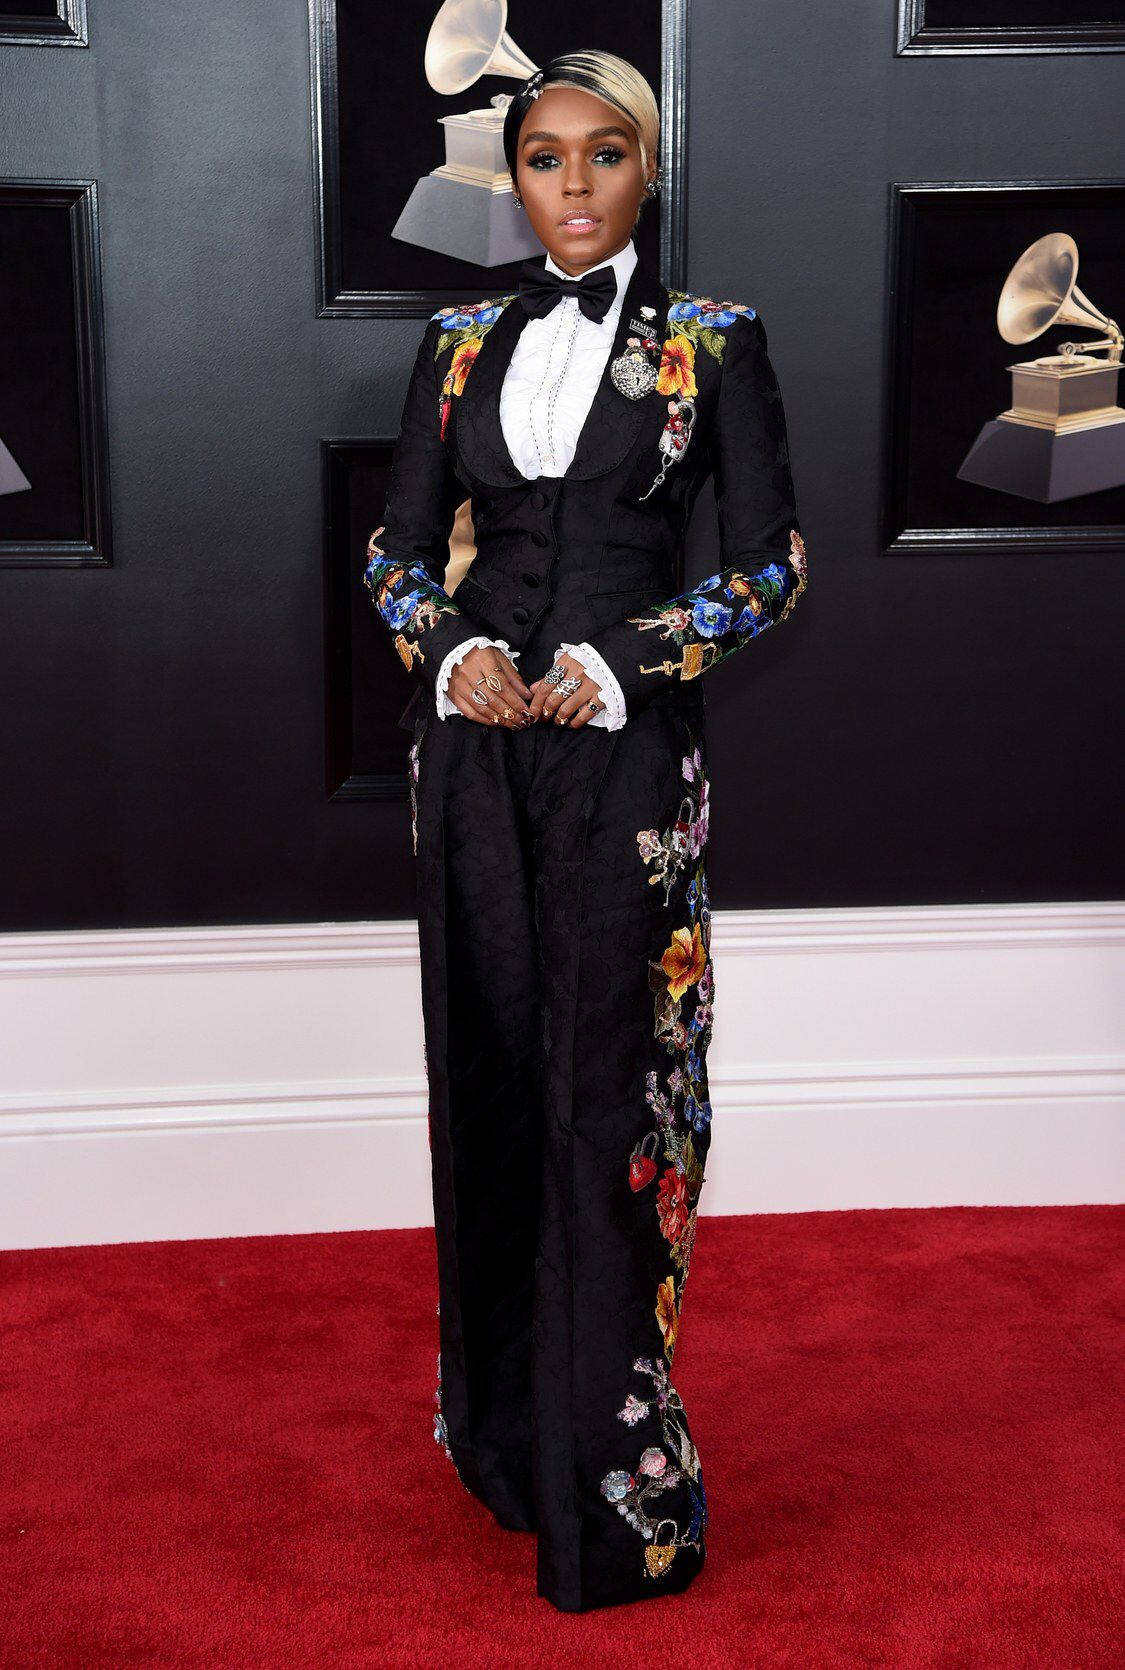 Blue Ivy Shushing Beyonce And Jay Z At The Grammys Becomes Instant Internet Hero Red Carpet Dresses Best Celebrity Dresses Red Carpet Fashion